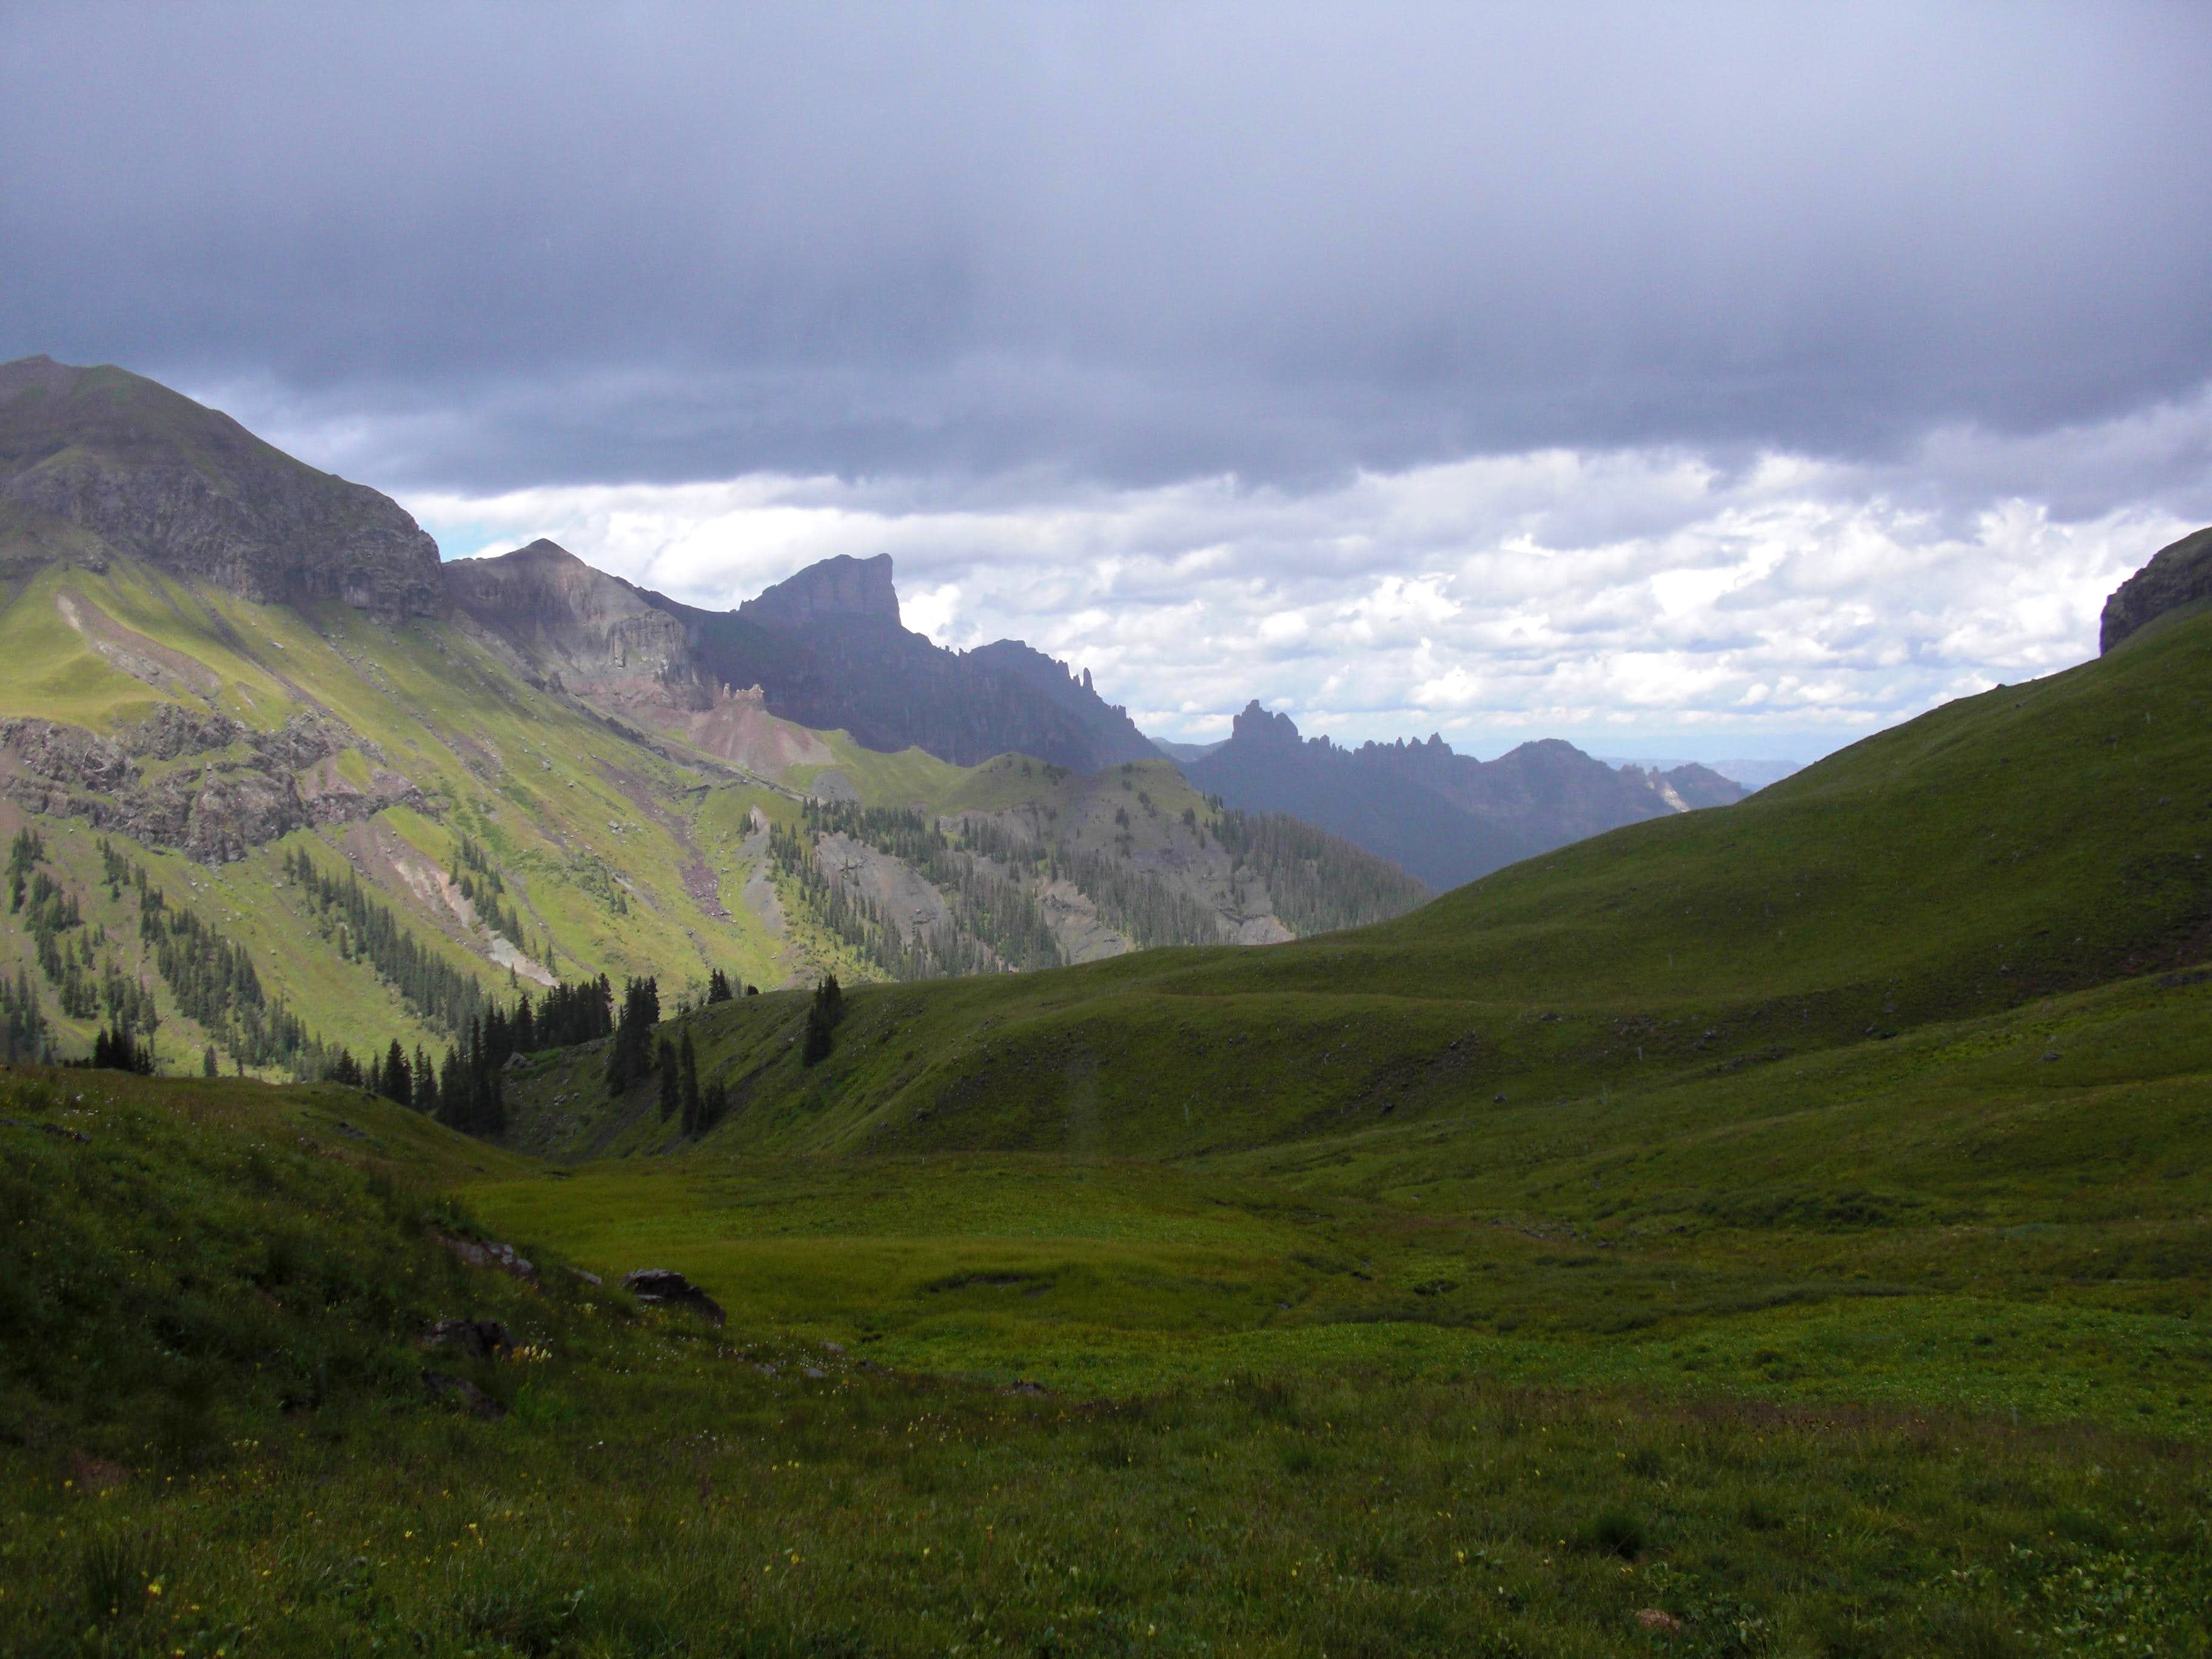 Backpacking the Uncompahgre Wilderness Area